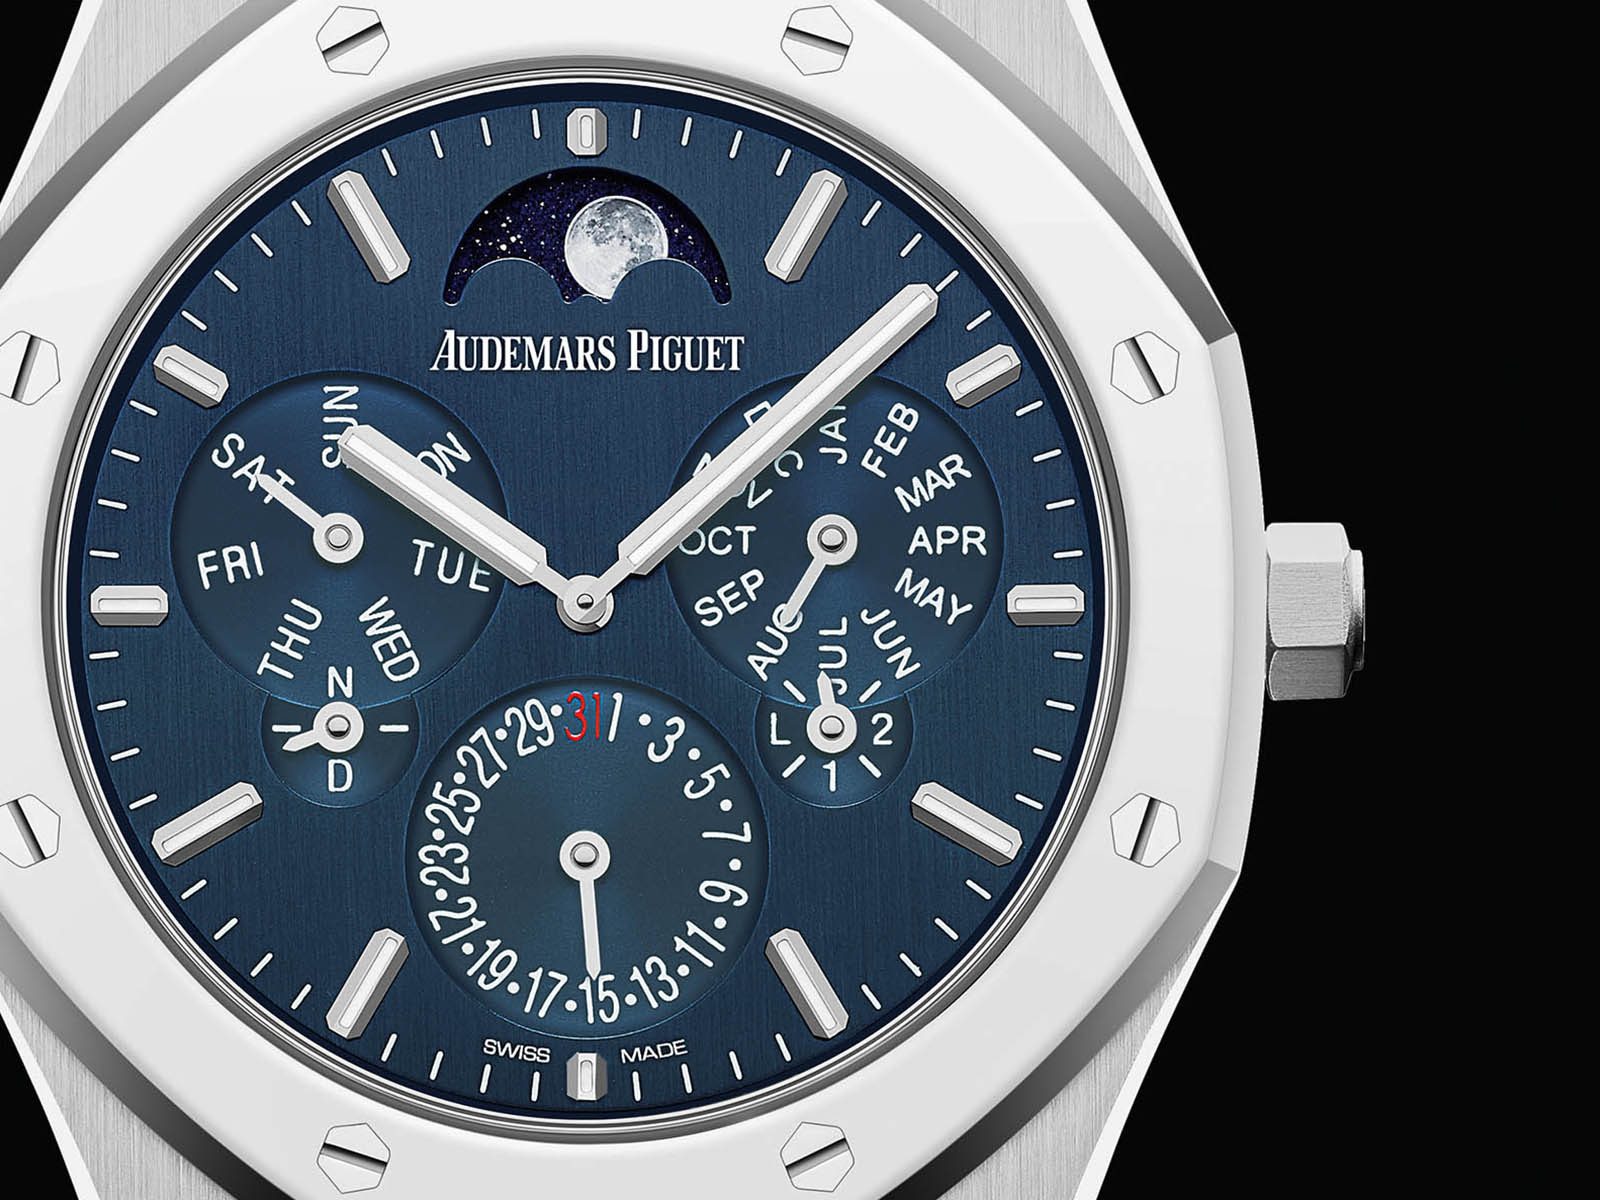 26586ip-oo-1240ip-01-audemars-piguet-royal-oak-perpetual-calendar-ultra-thin-2.jpg